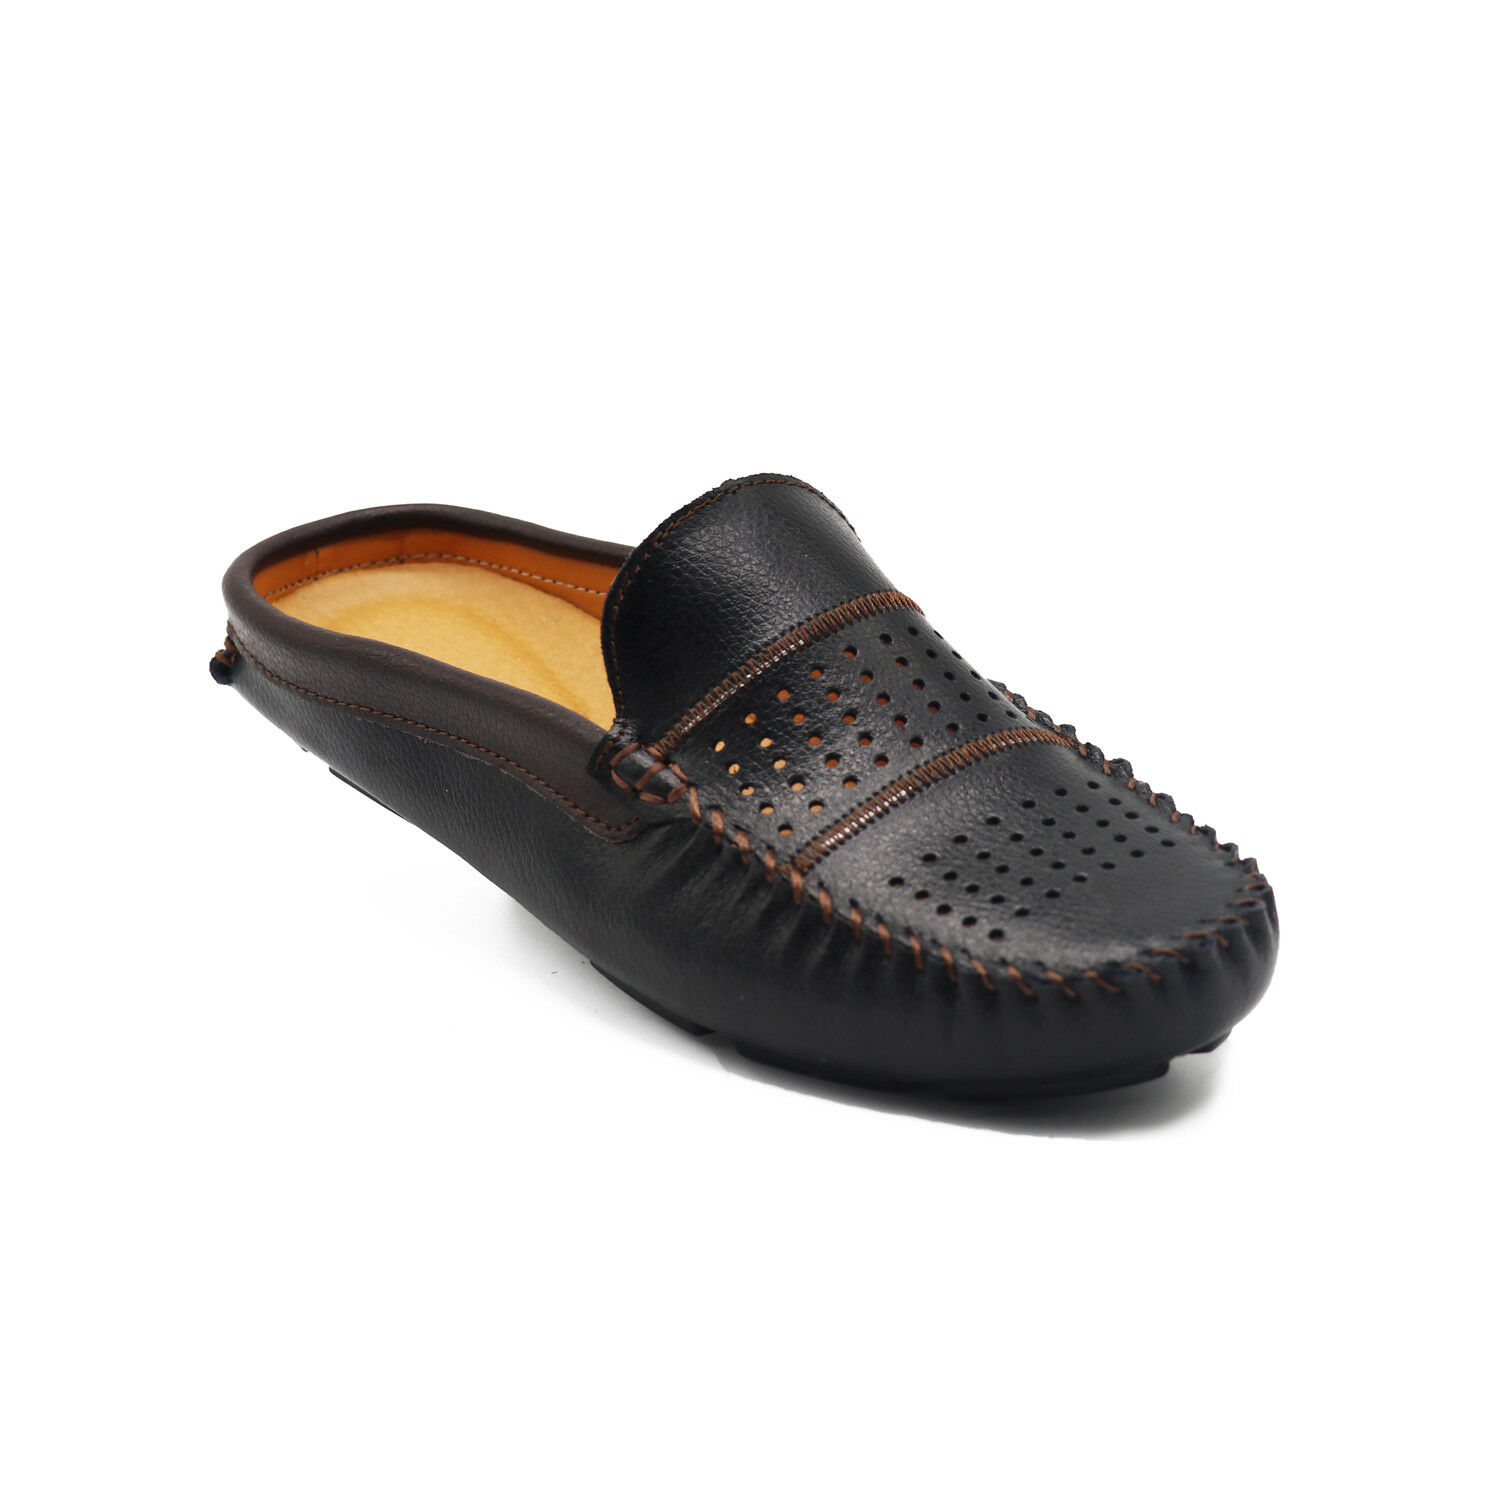 Mens Fashion Leather Breathable Loafers Slip On Mule Slippers Casual Flats shoes